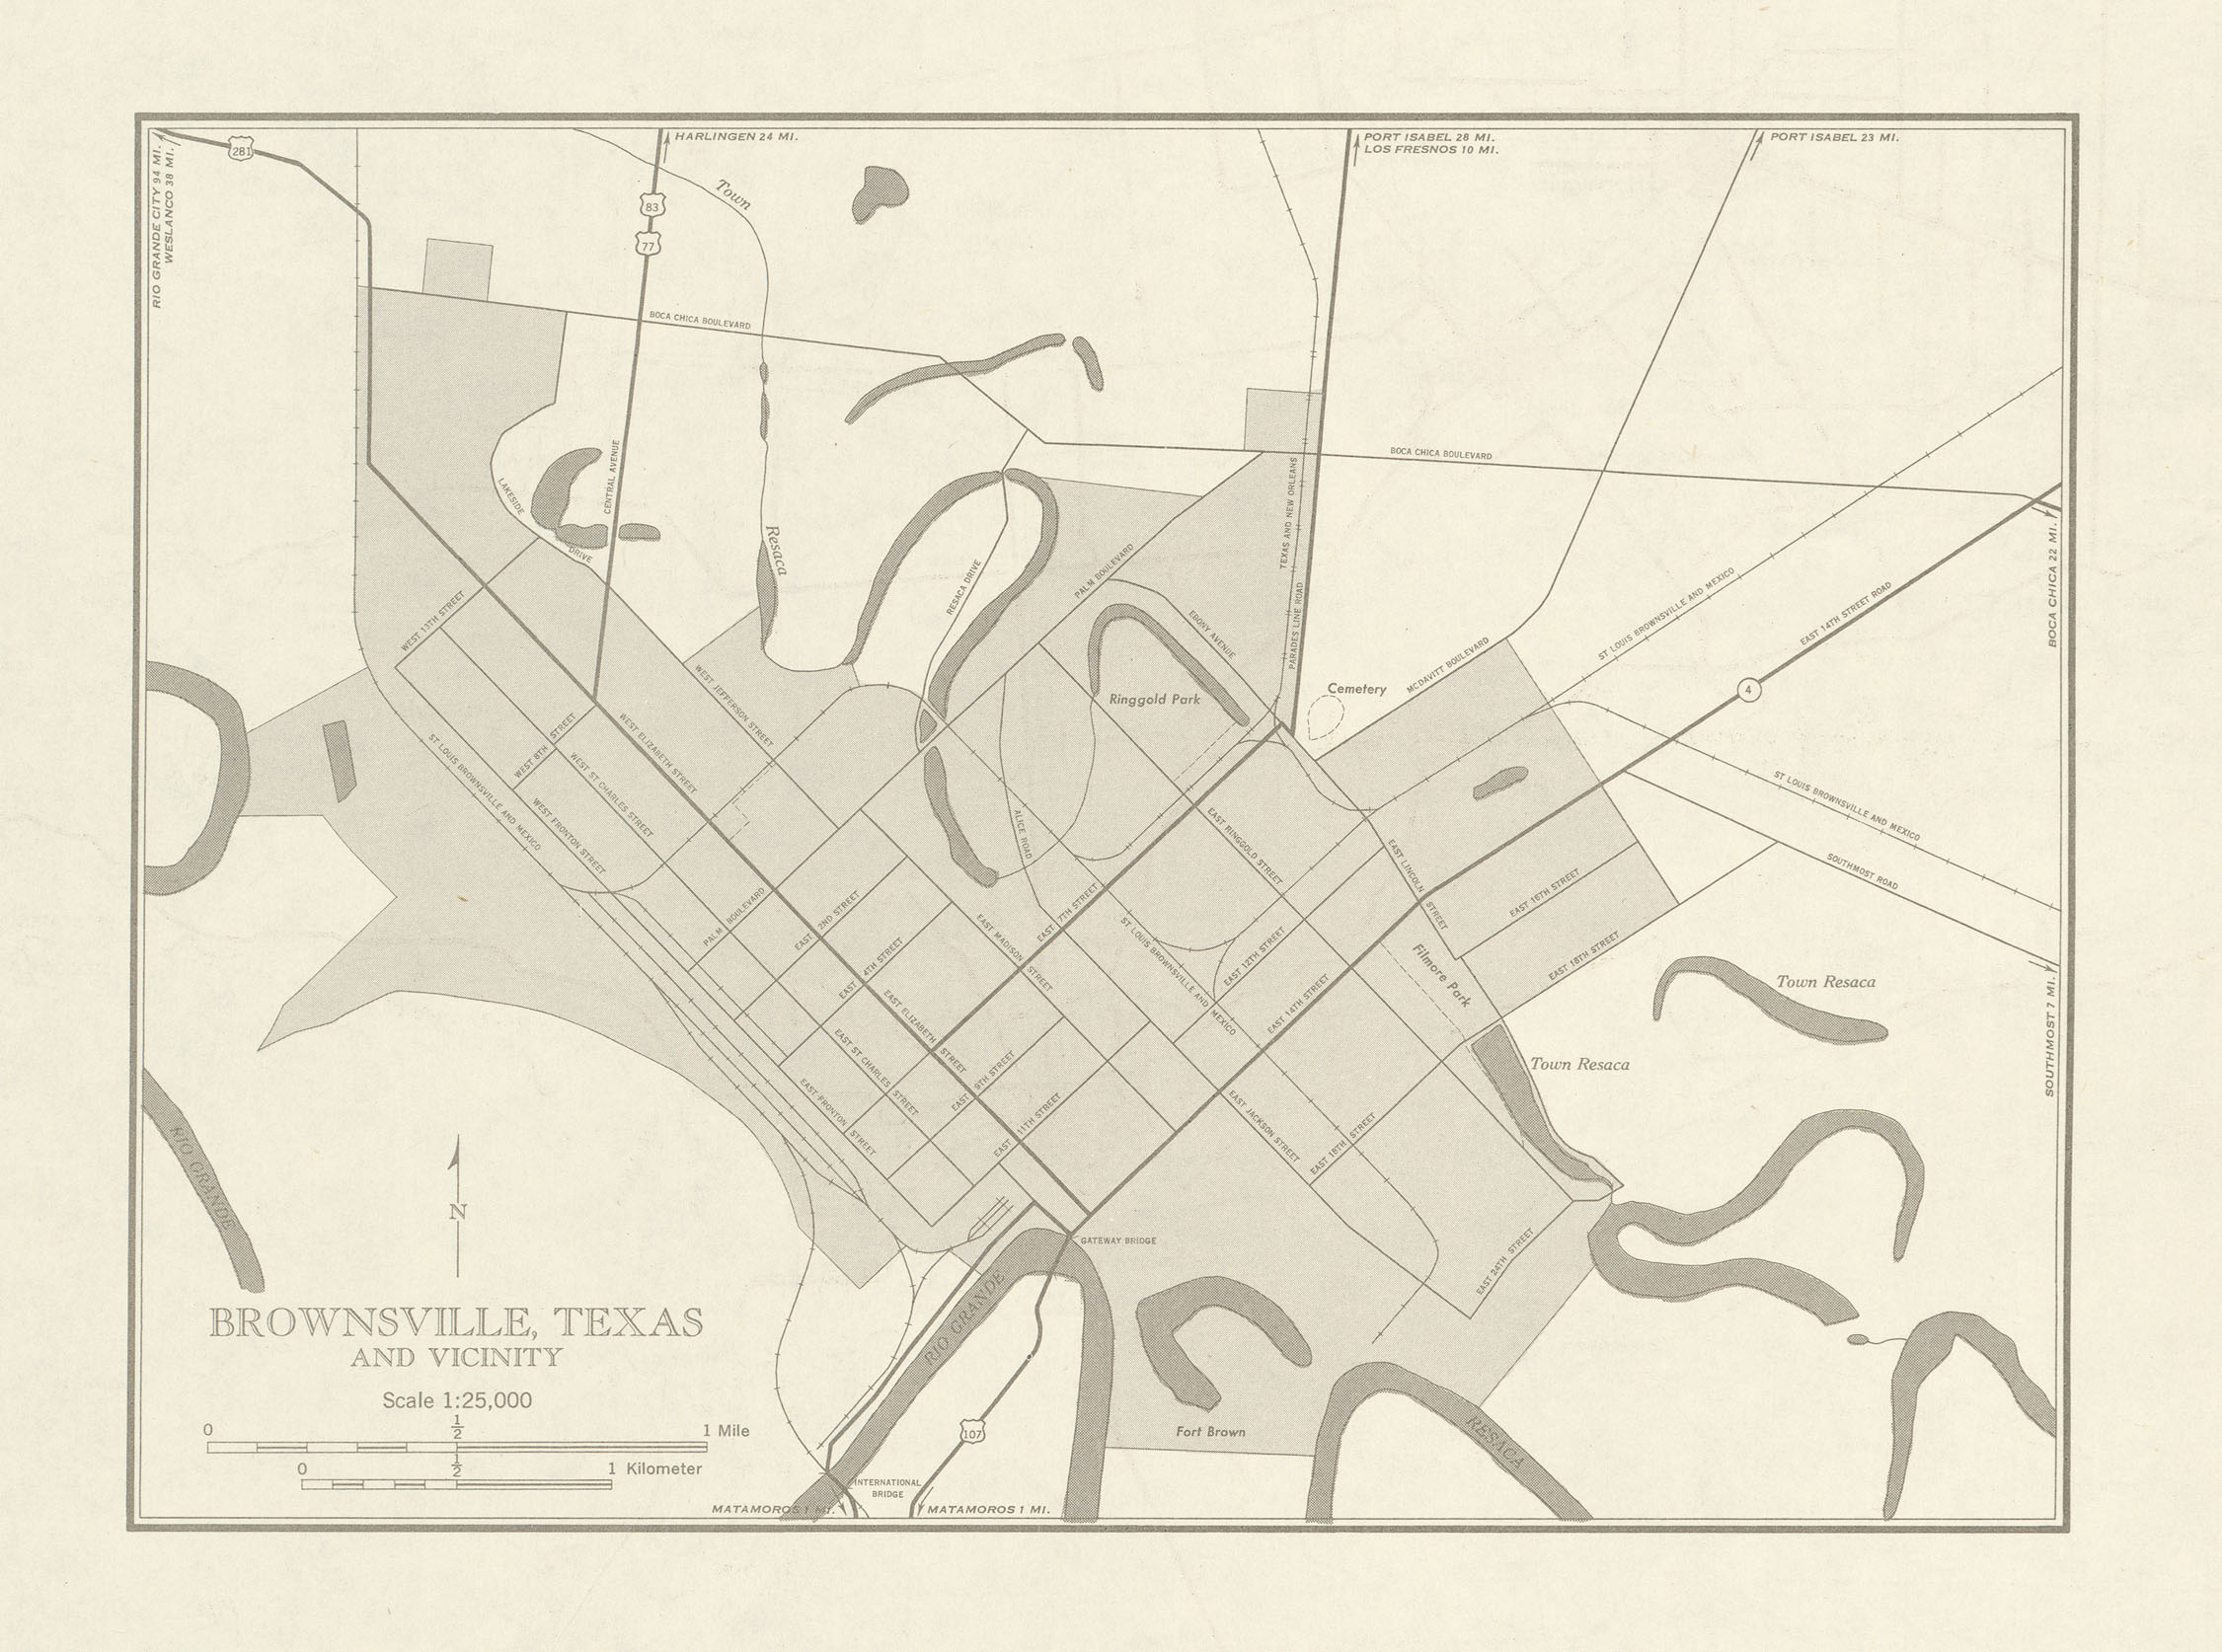 City Map of Brownsville and Vicinity, Texas, United States 1953